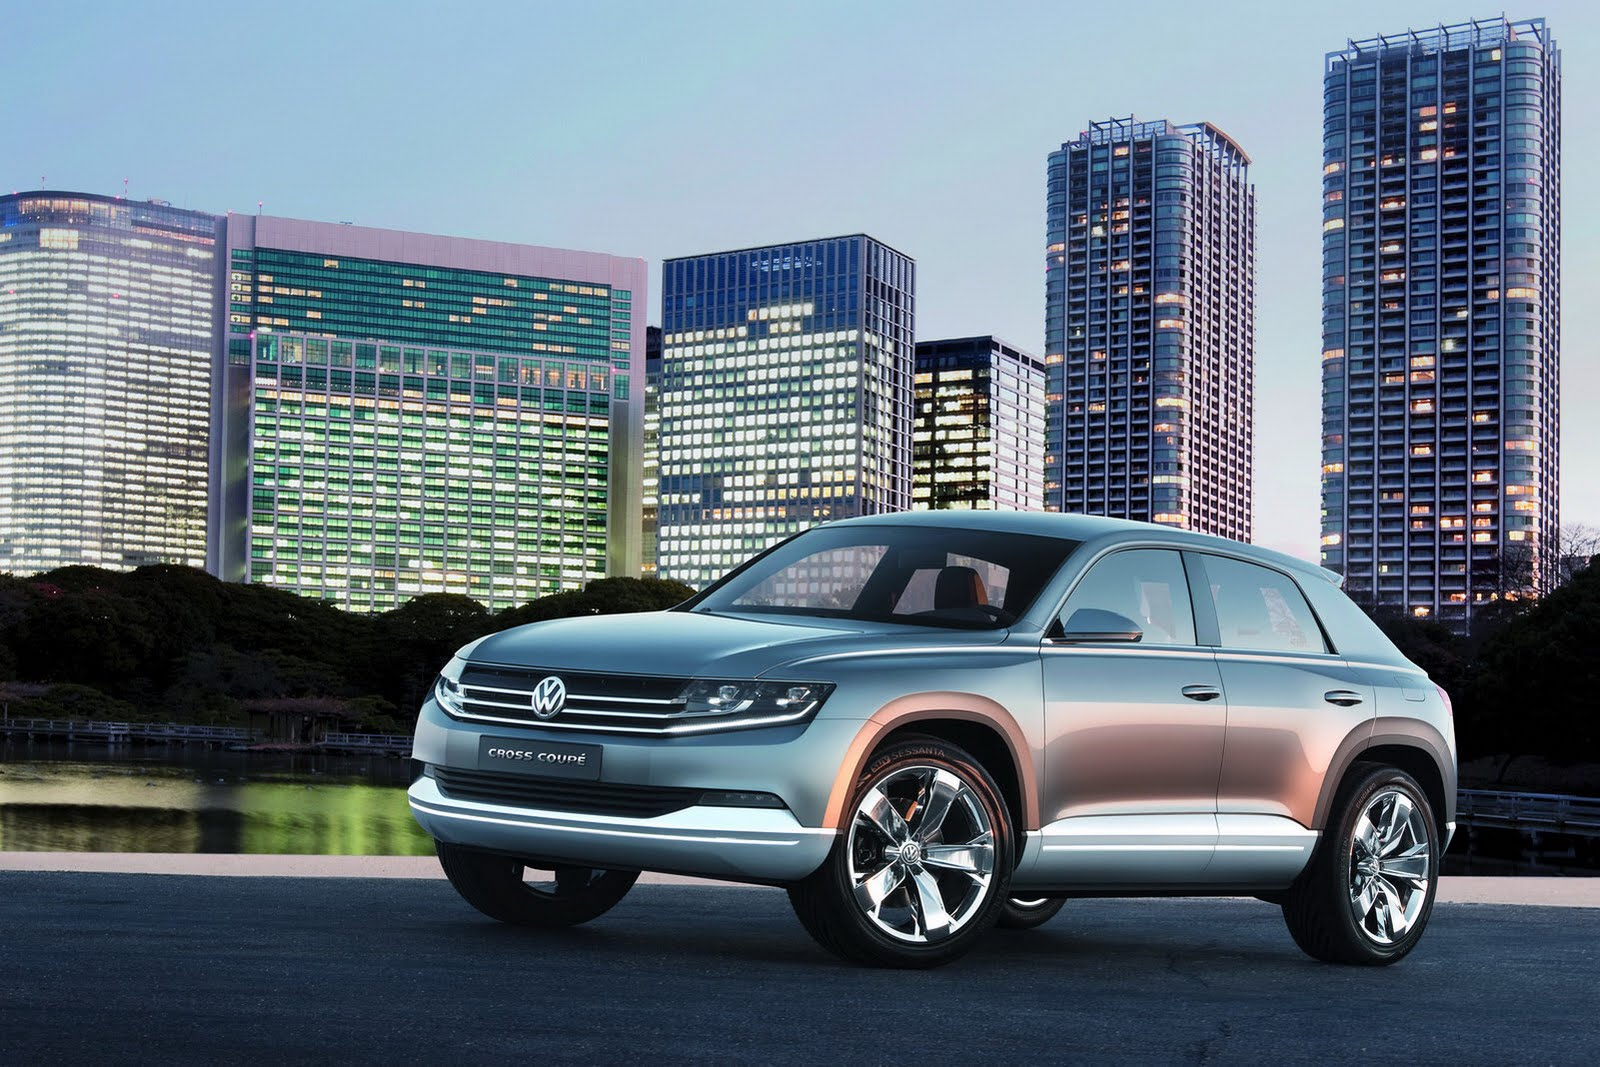 New Volkswagen Cross Coupe Suv Concept